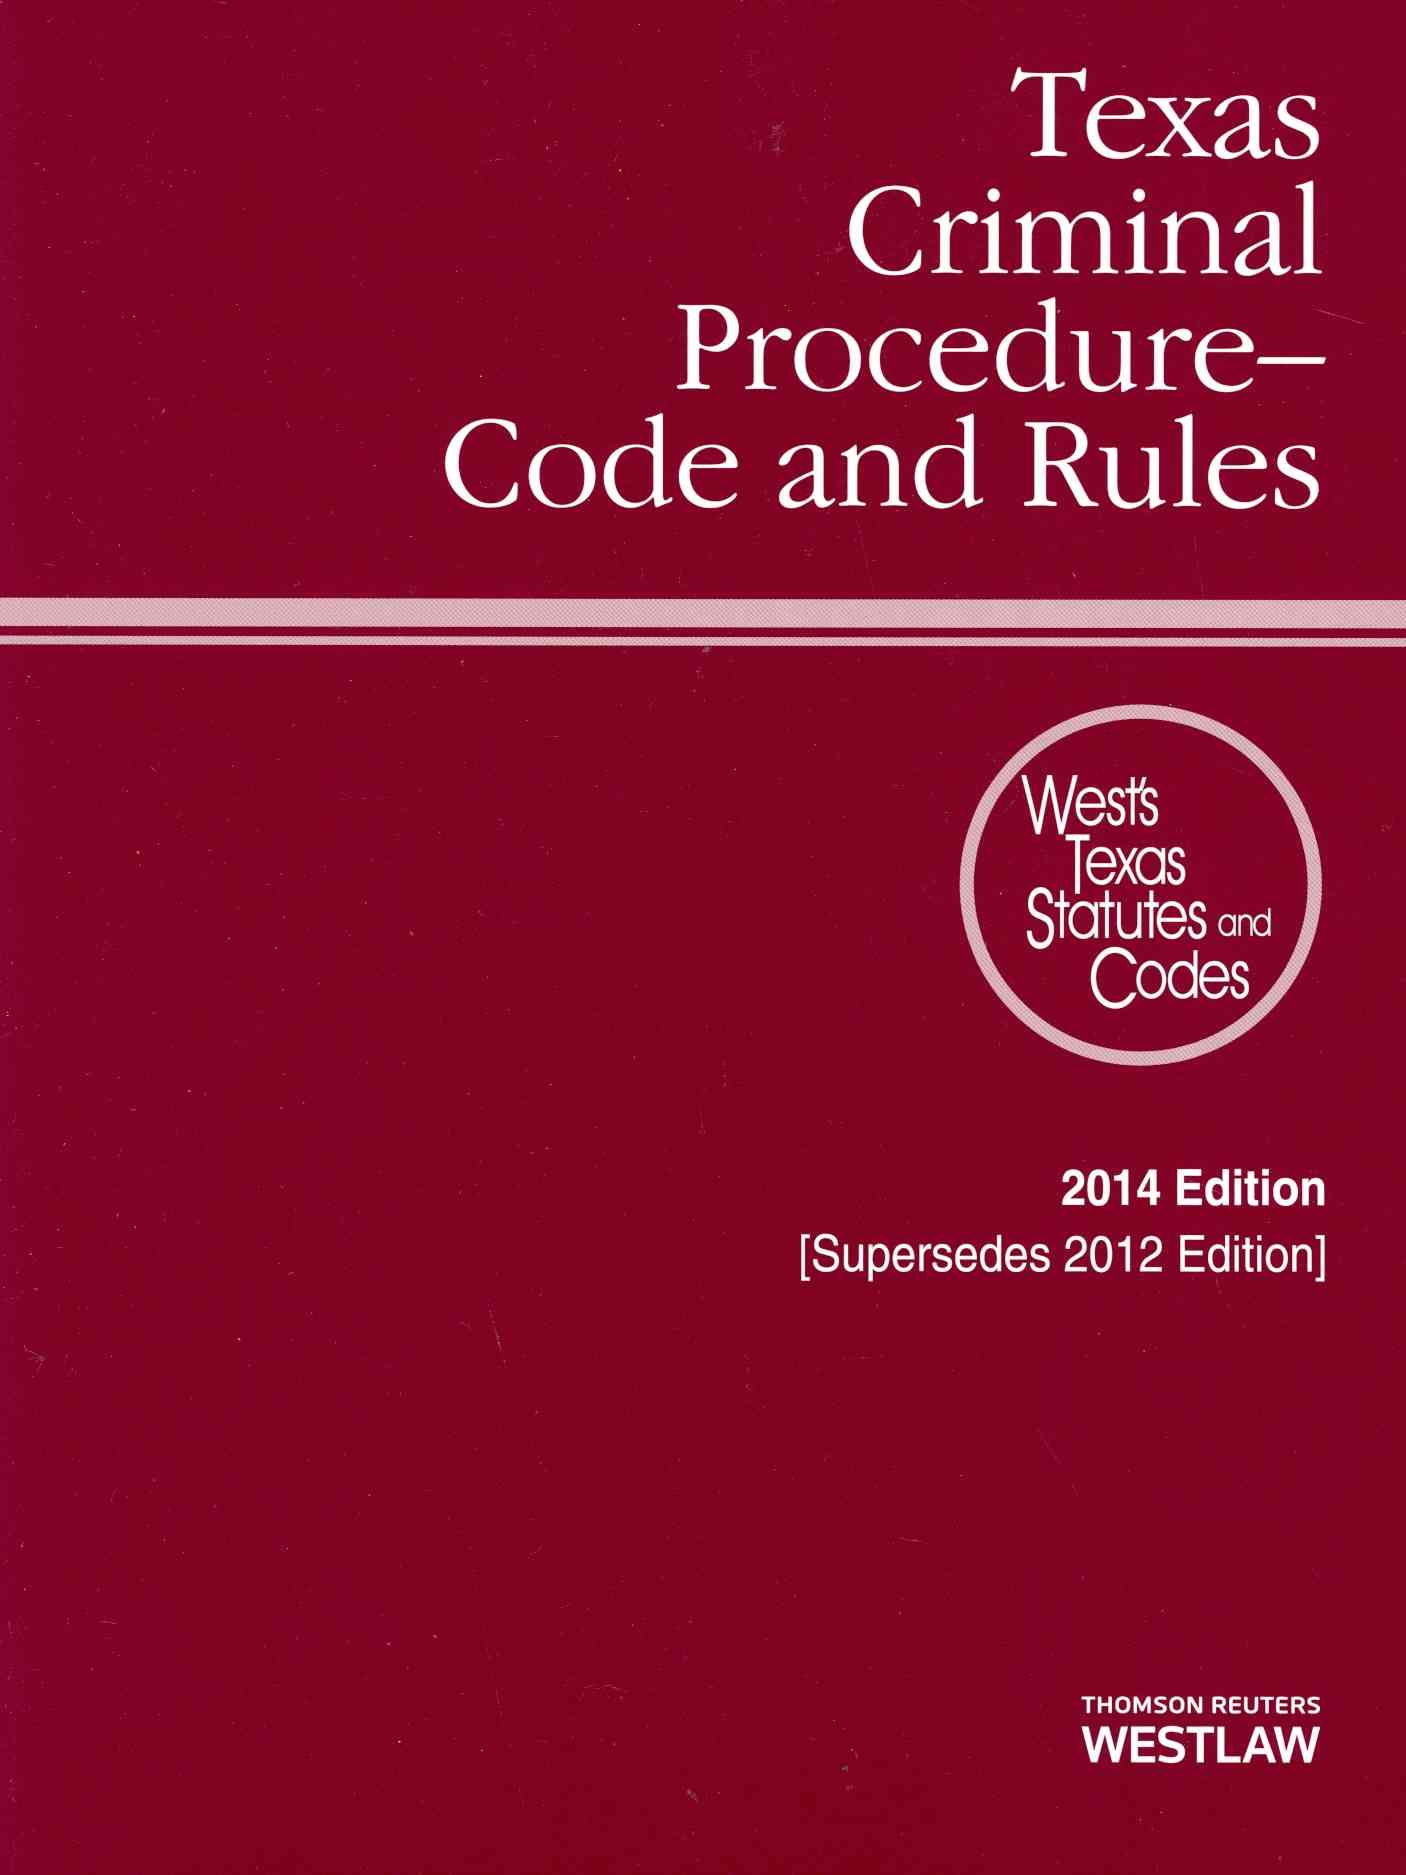 Texas Criminal Procedure-Code and Rules 2014 By Thomson Reuters (COR)